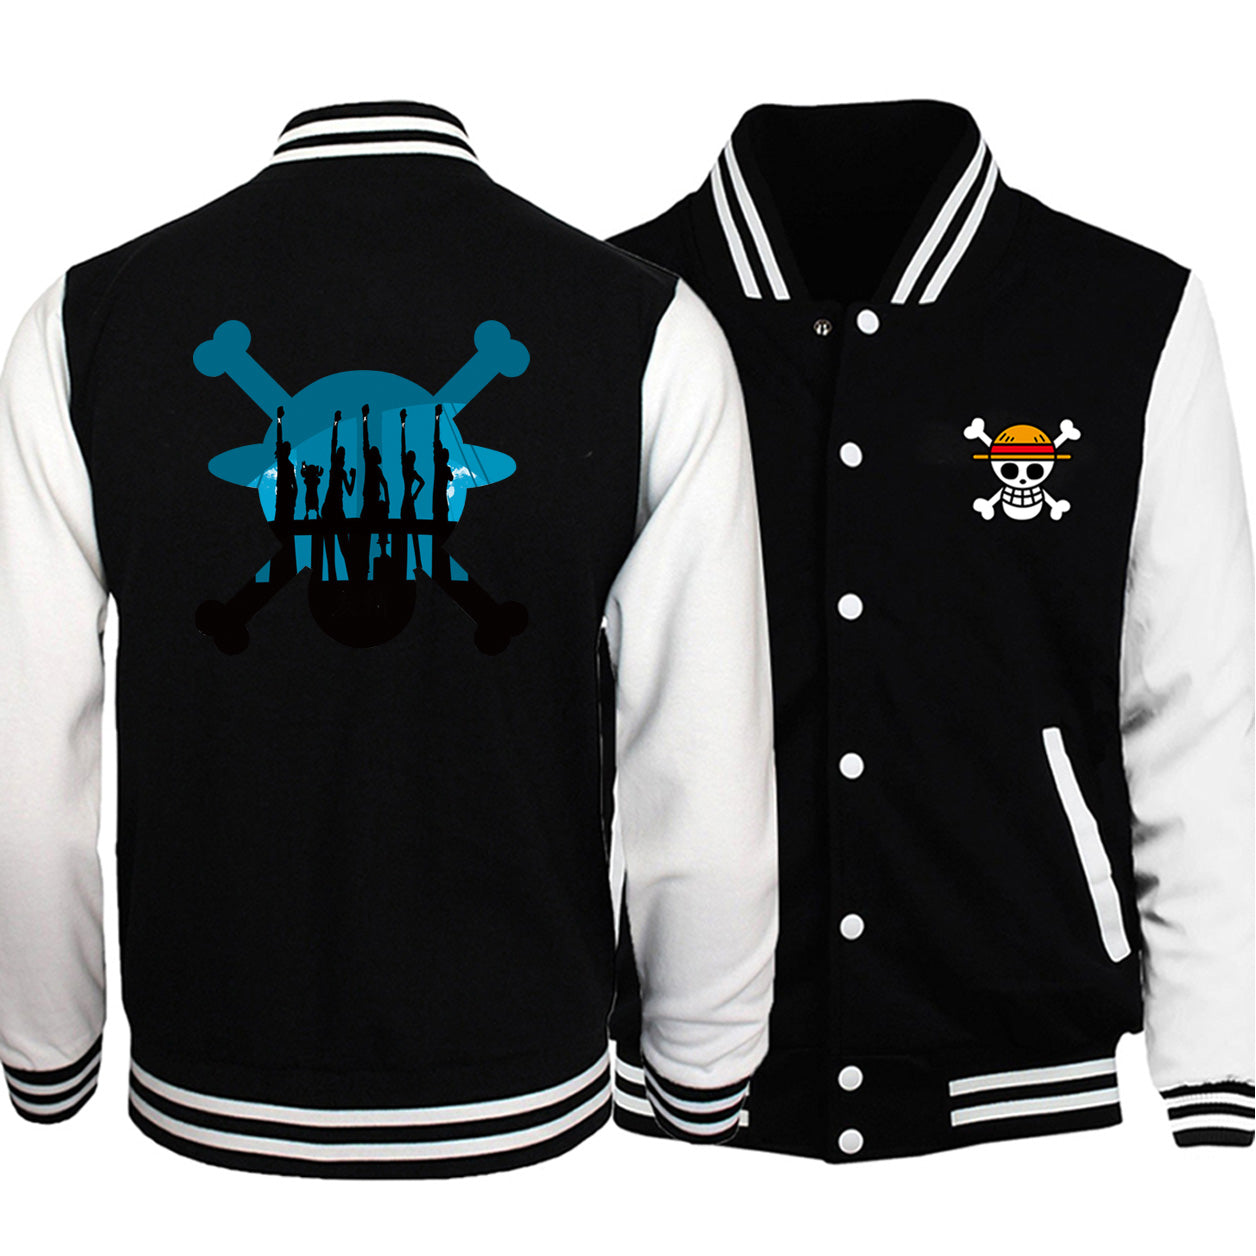 One Piece Colored Yatta Varsity Jacket - Ikuzo Concept